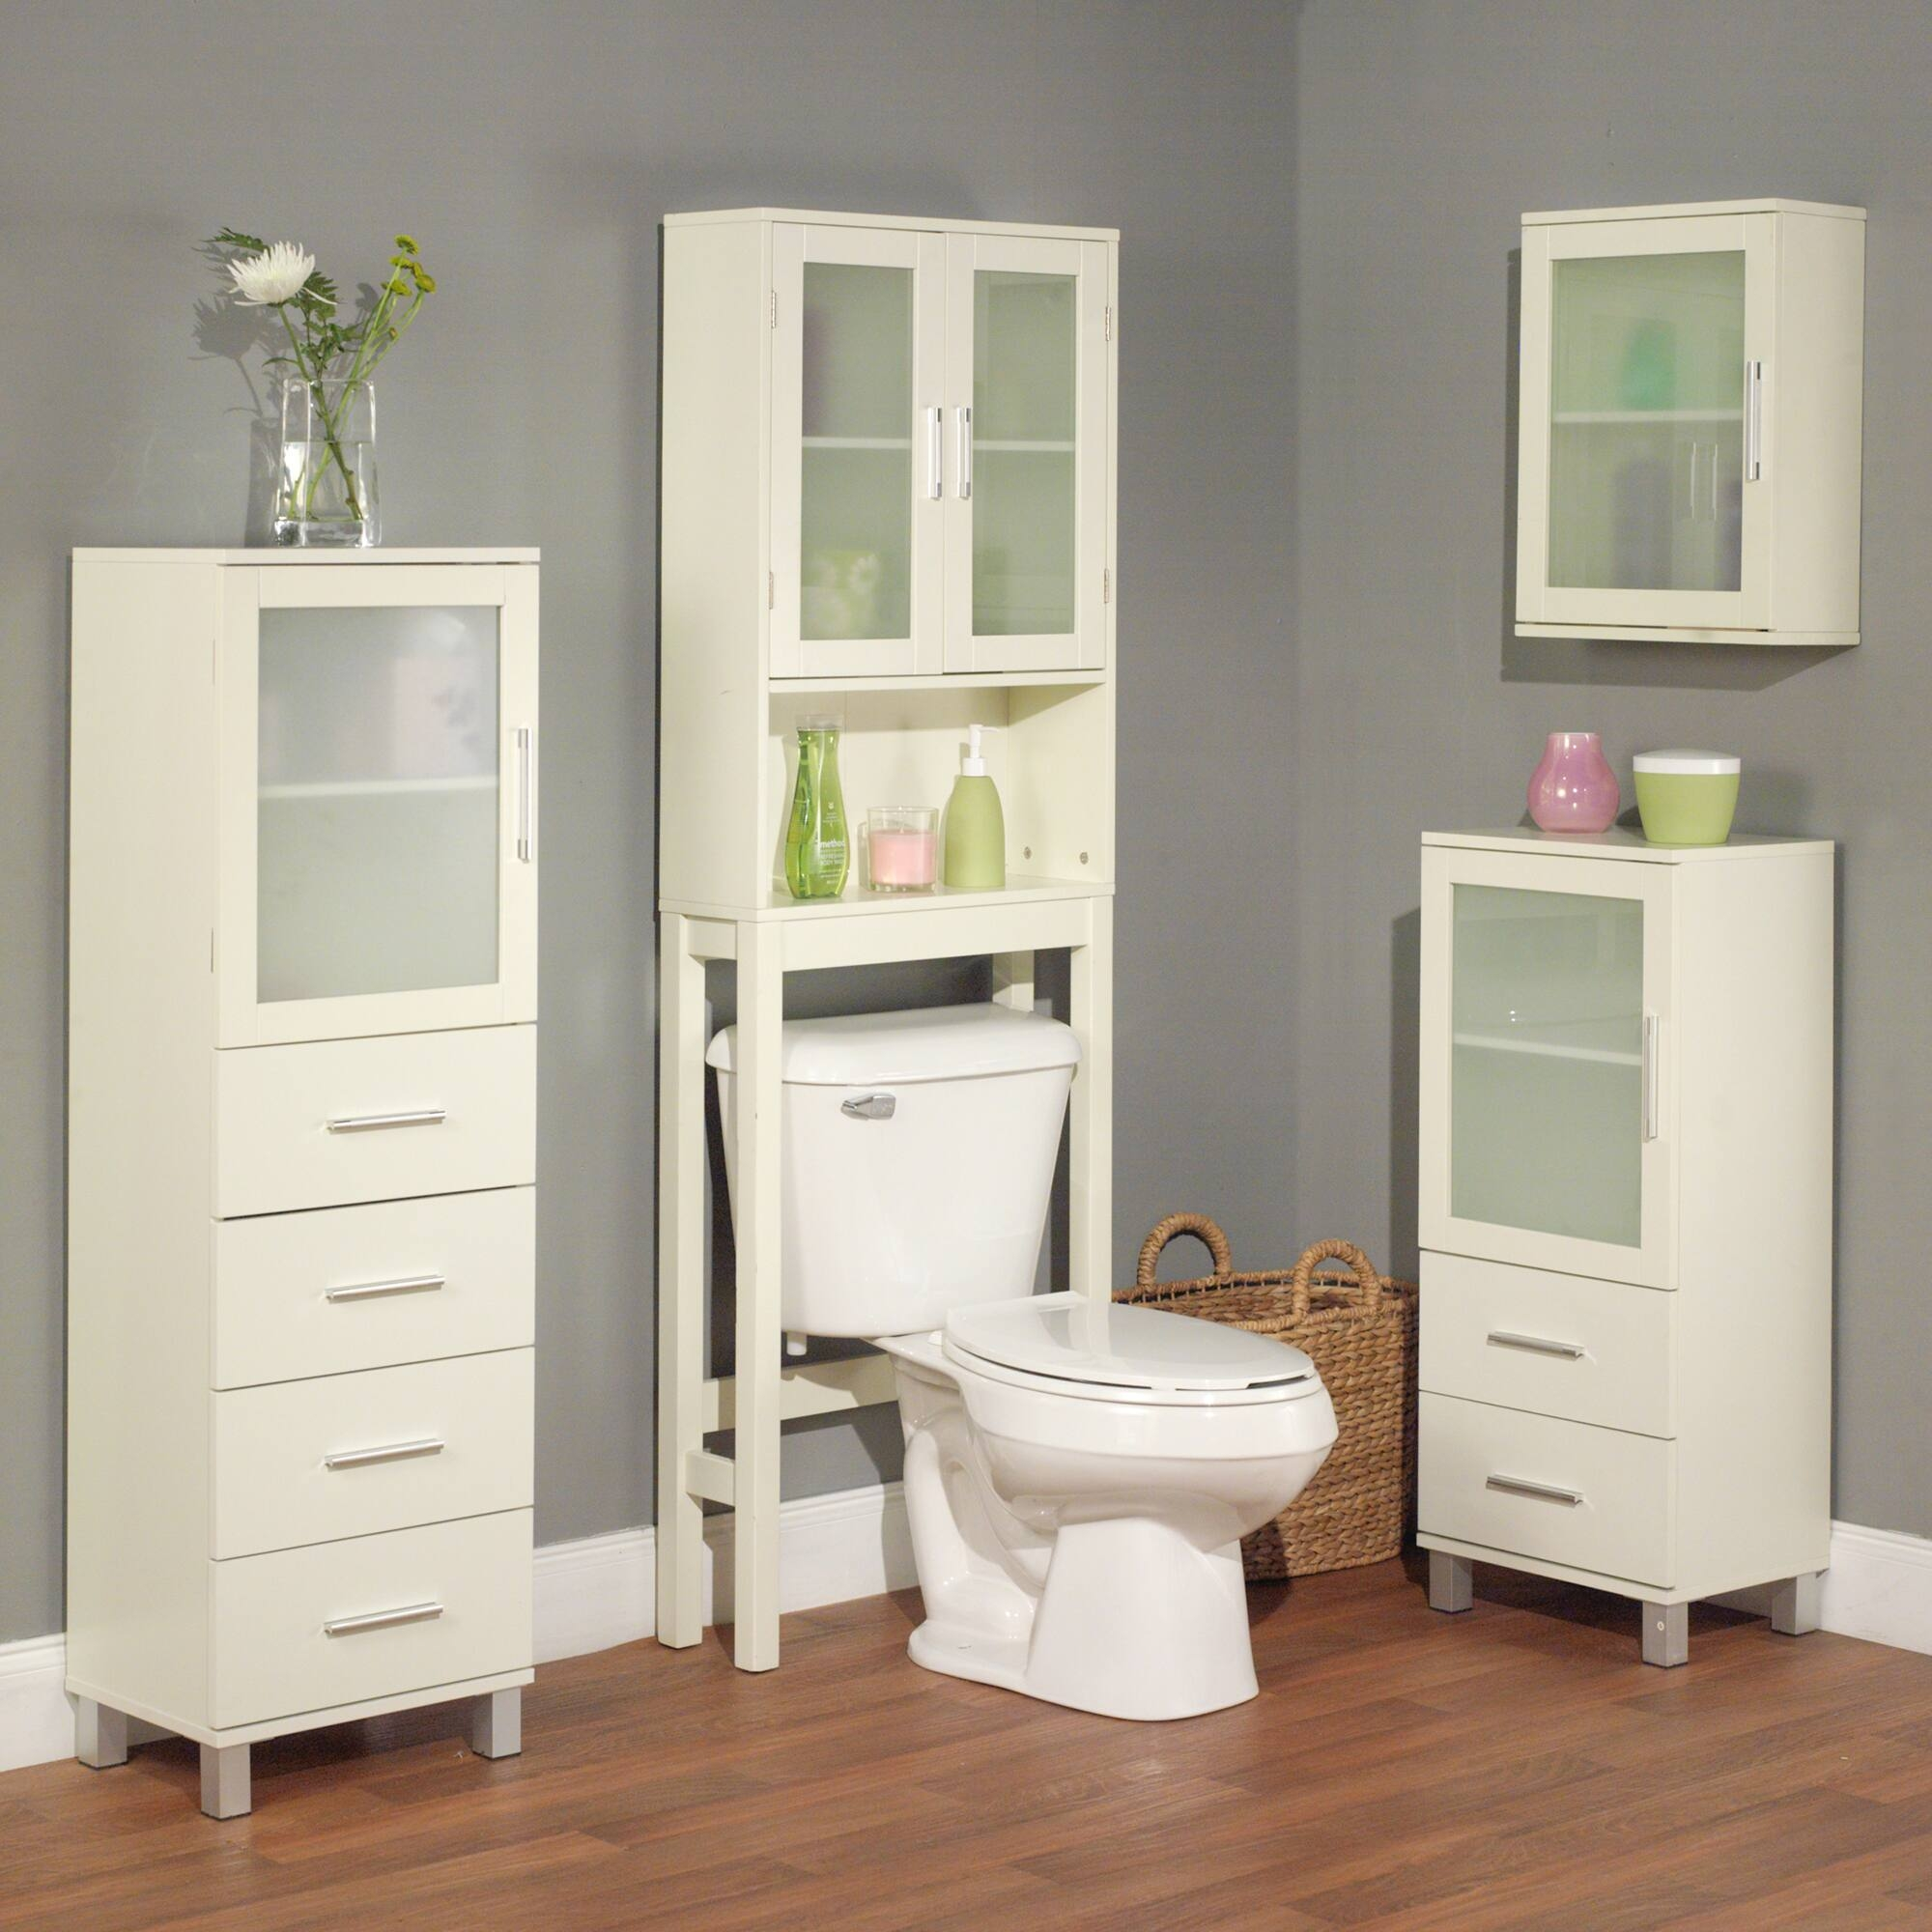 Frosted Pane Shelf White Linen Cabinet 2 Drawer 2 Bathroom Storage Cabinet.  Great For Bath